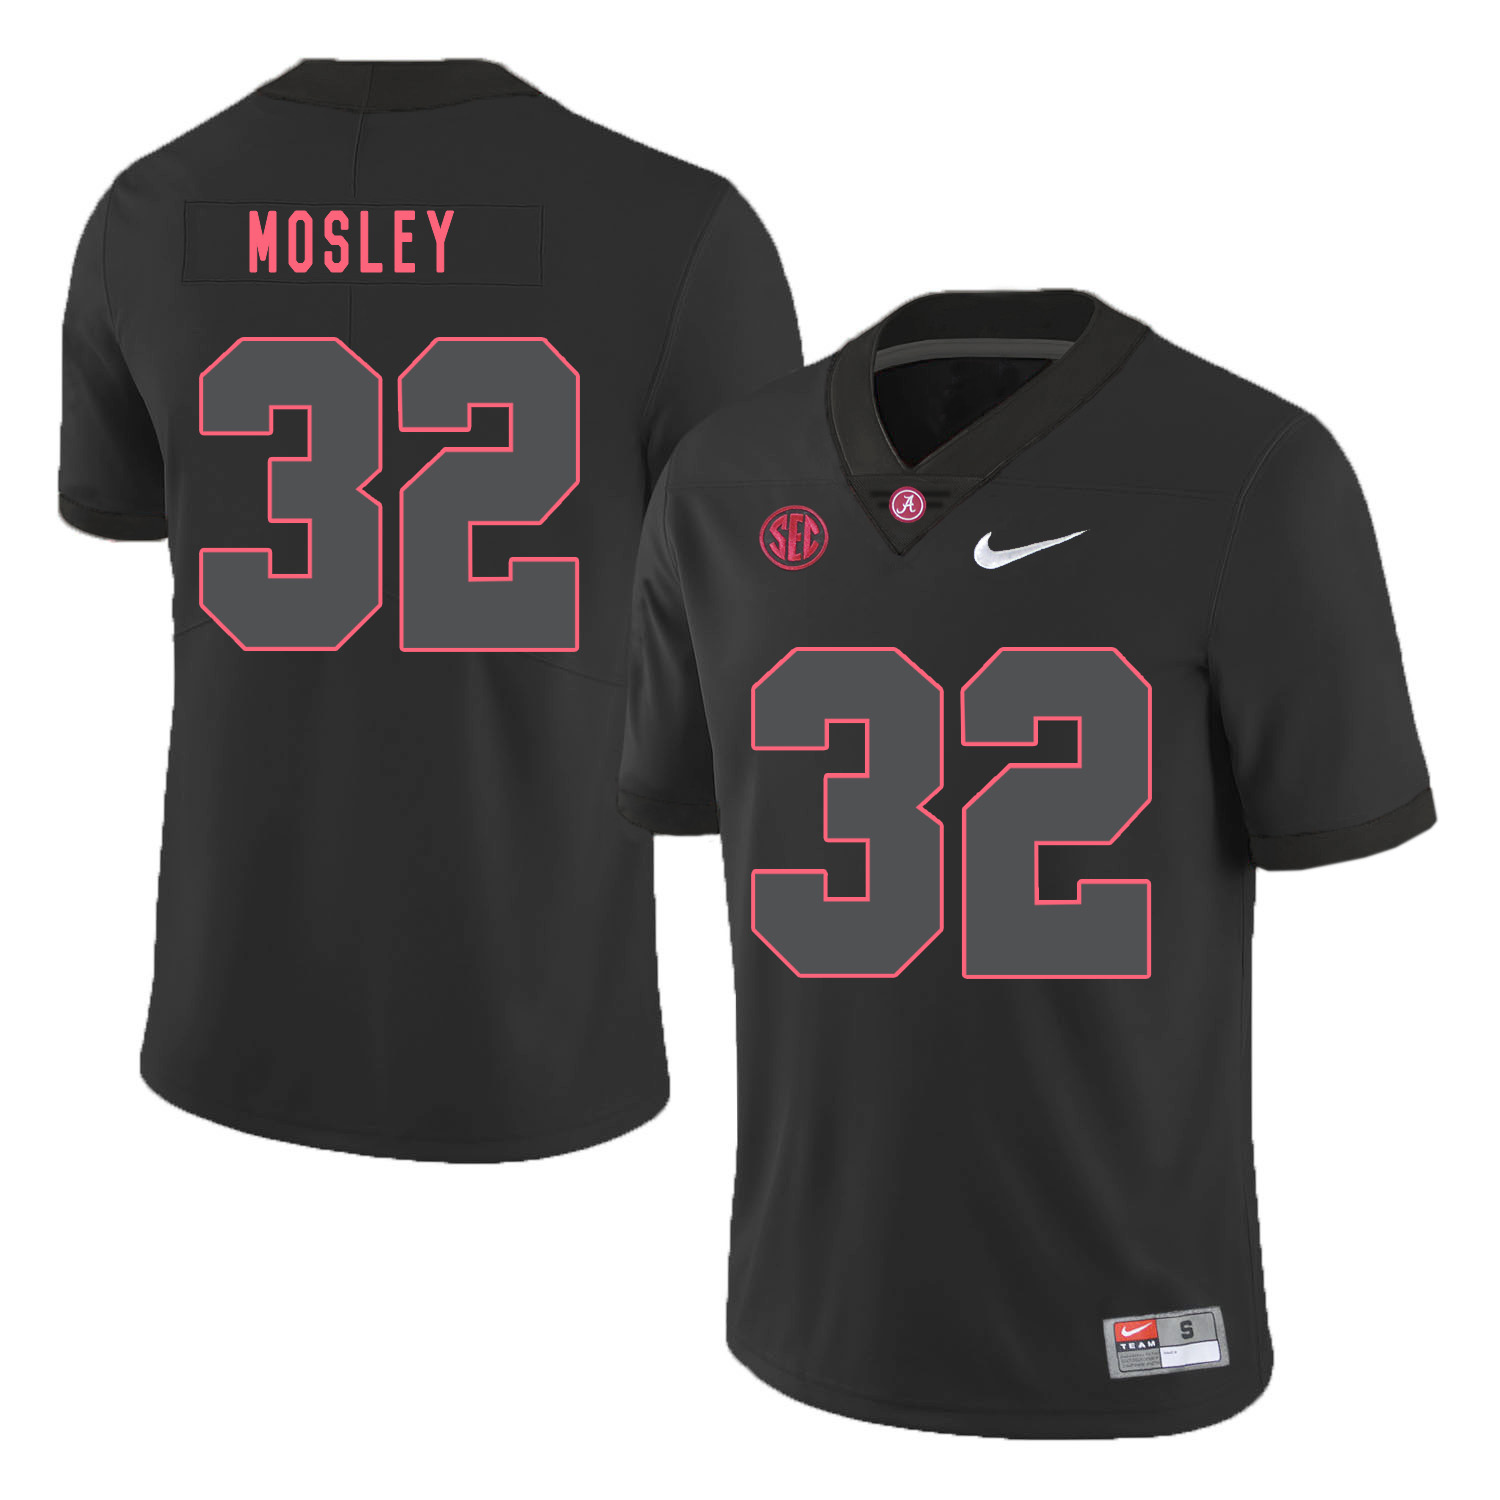 Alabama Crimson Tide 32 C.J. Mosley Black Shadow Nike College Football Jersey